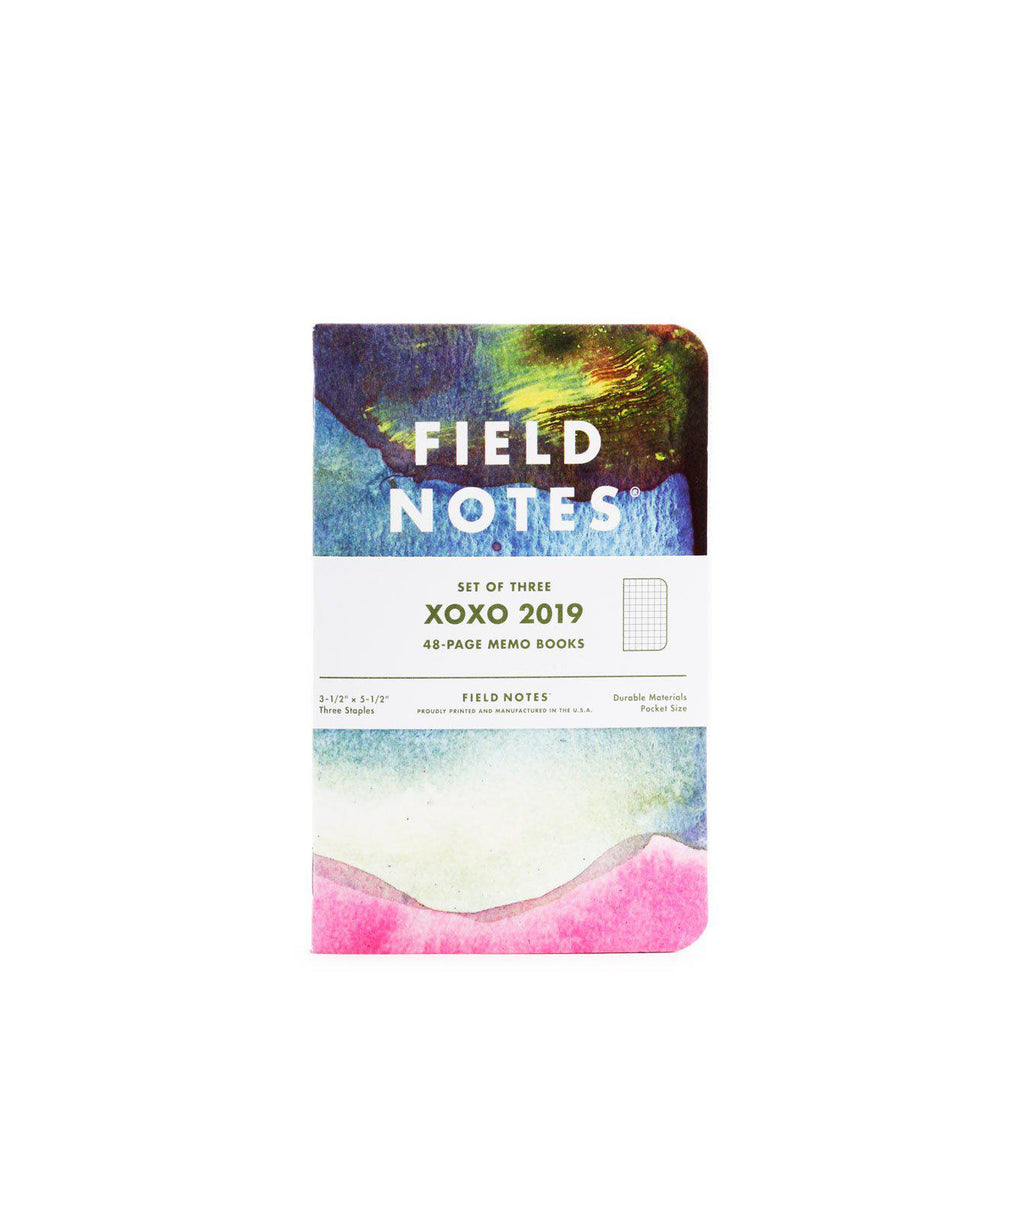 Field Notes | XOXO 2019